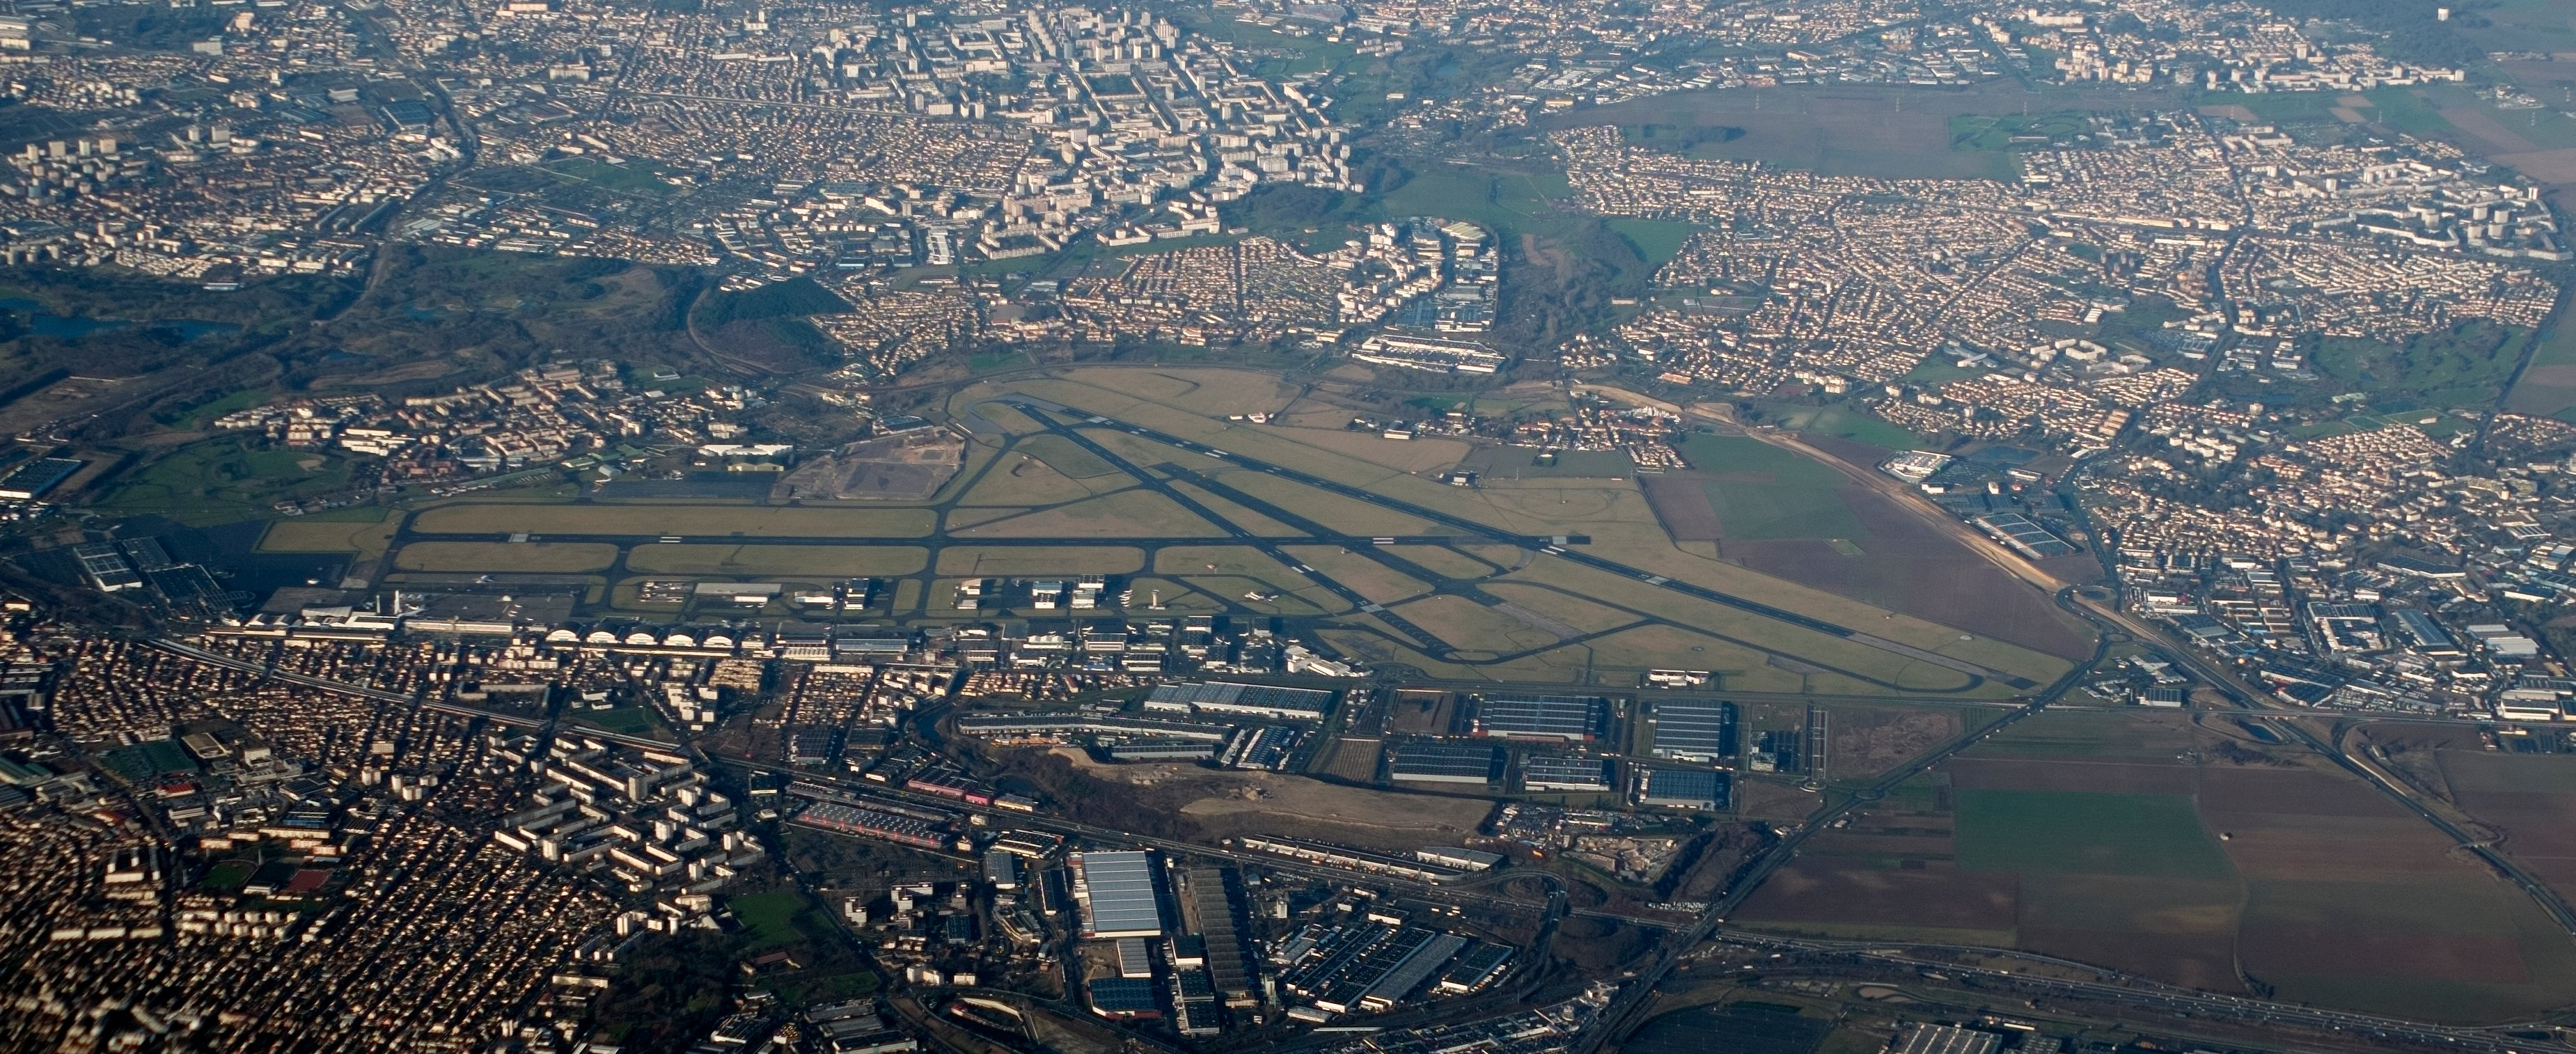 Le Bourget Airport